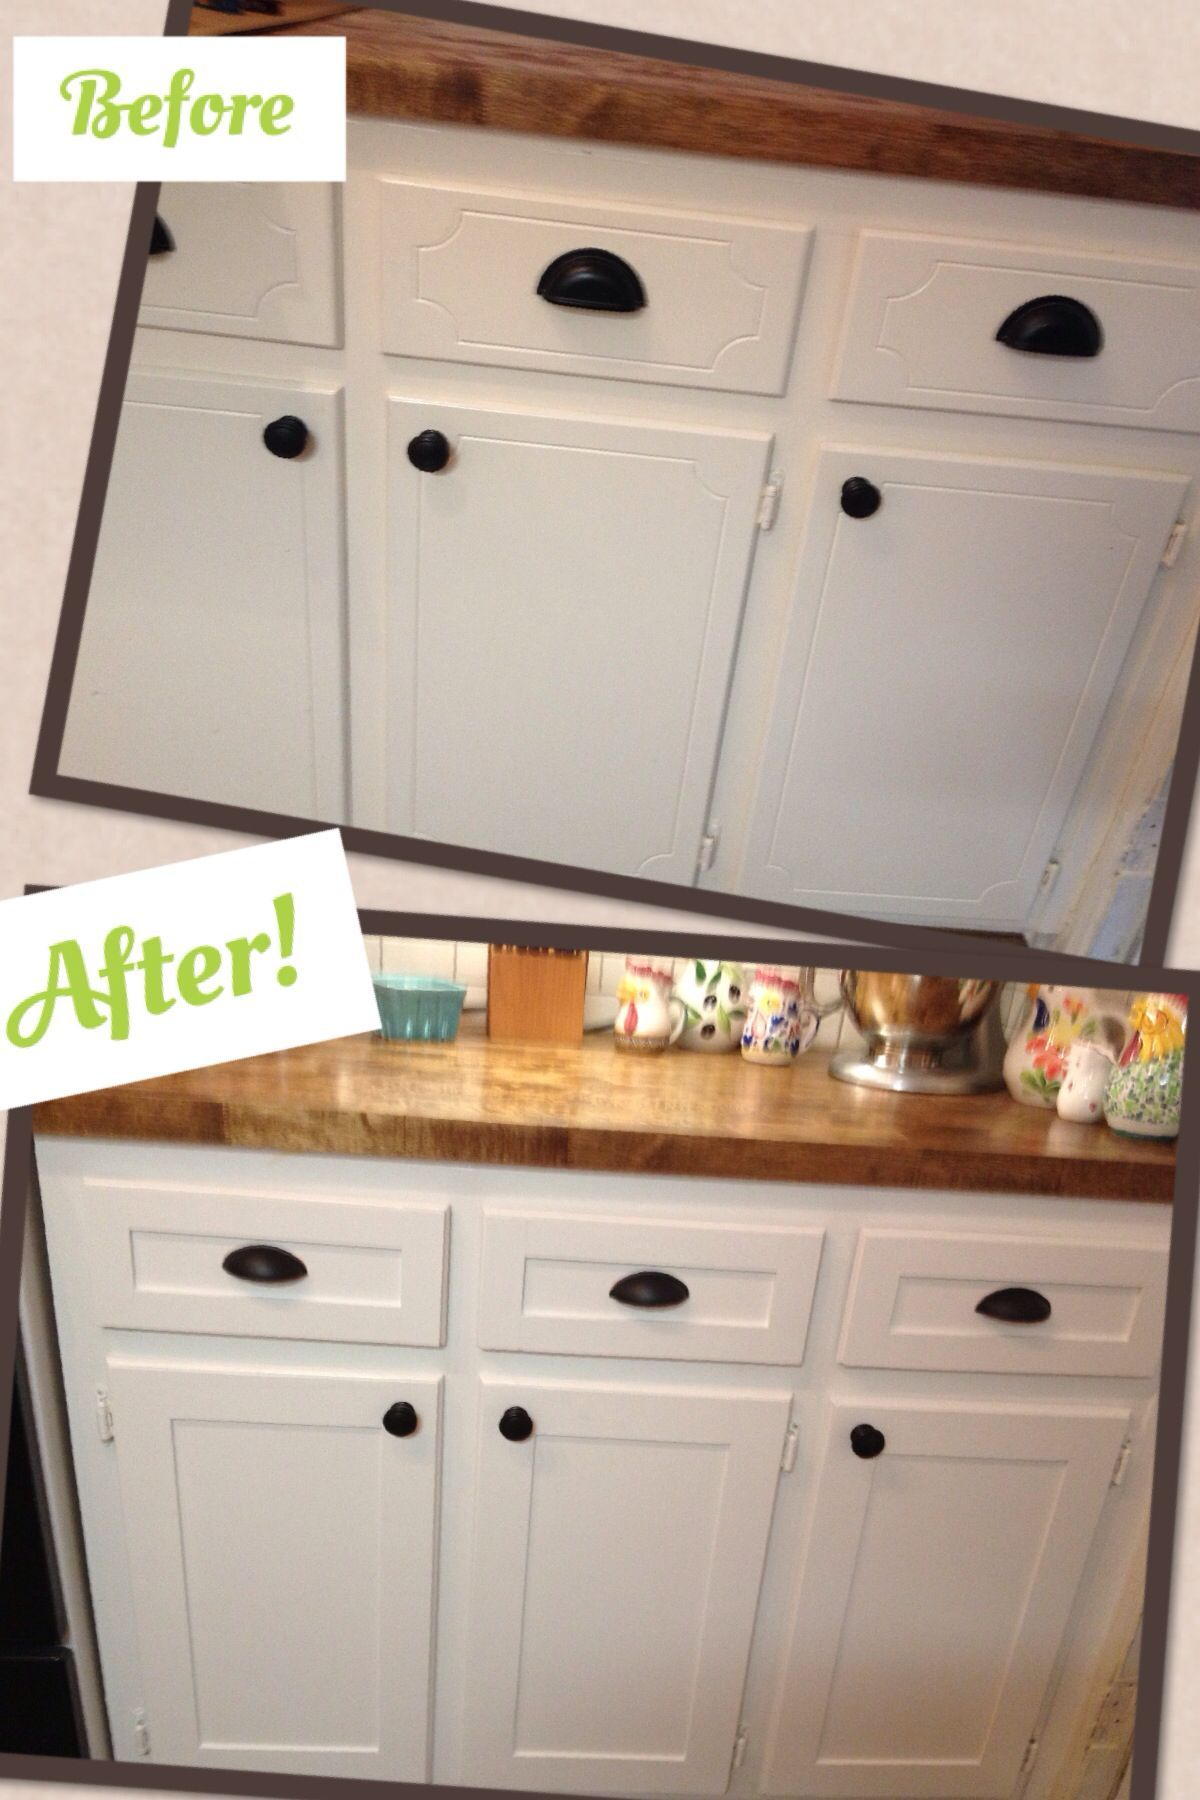 Kitchen Cabinet Refacing Project   DIY Shaker Trim   Done! Before And After